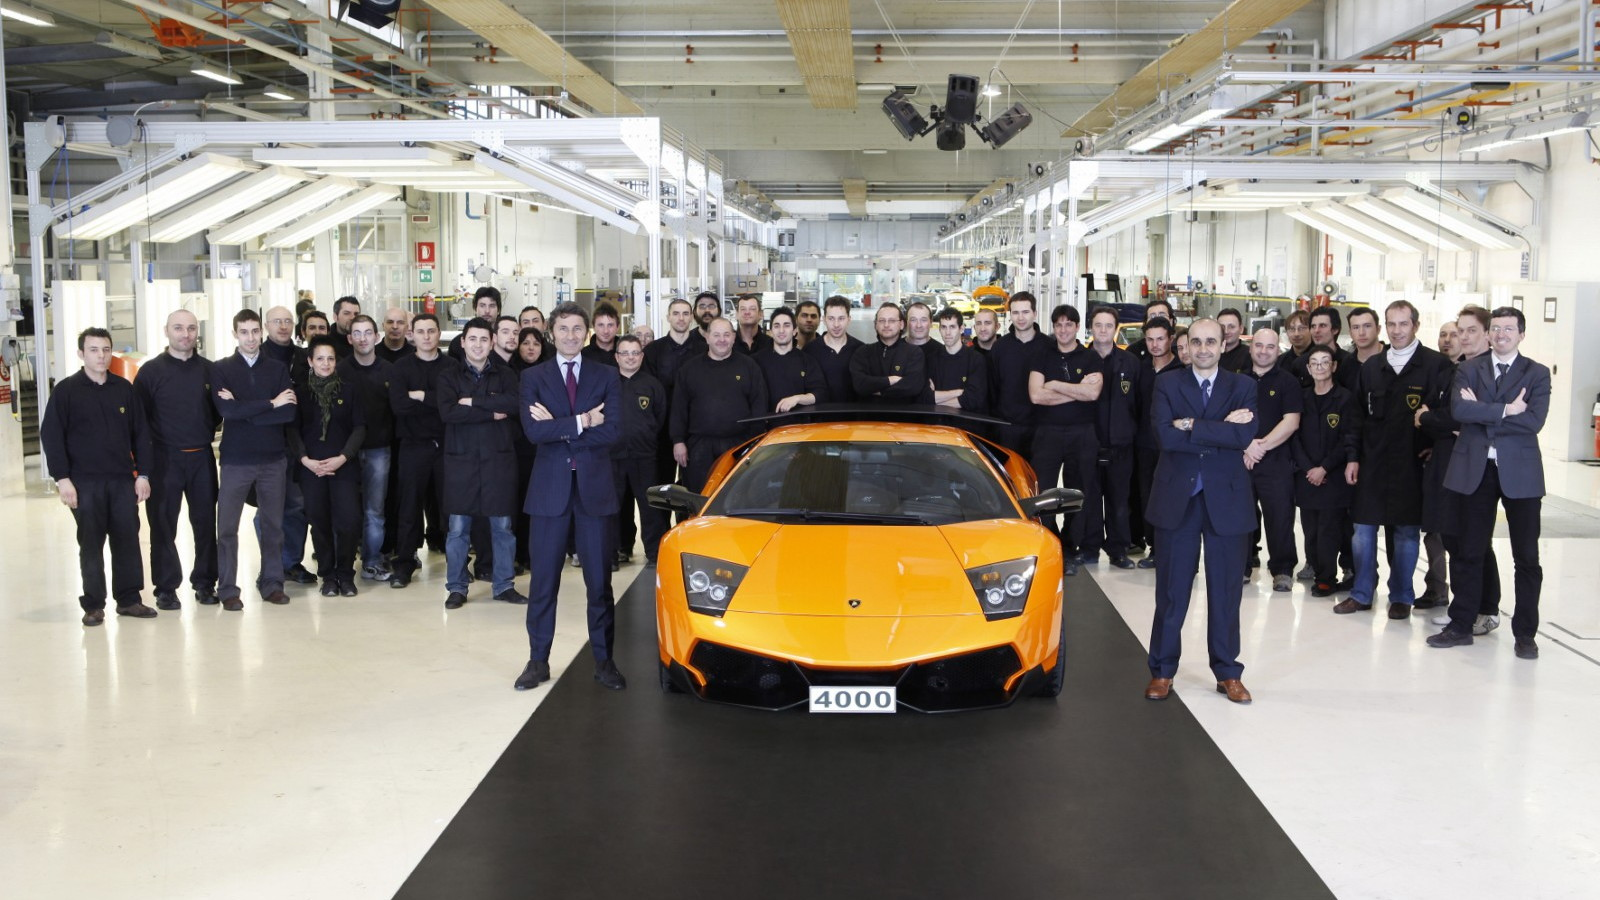 The 4,000th Lamborghini Murcielago built